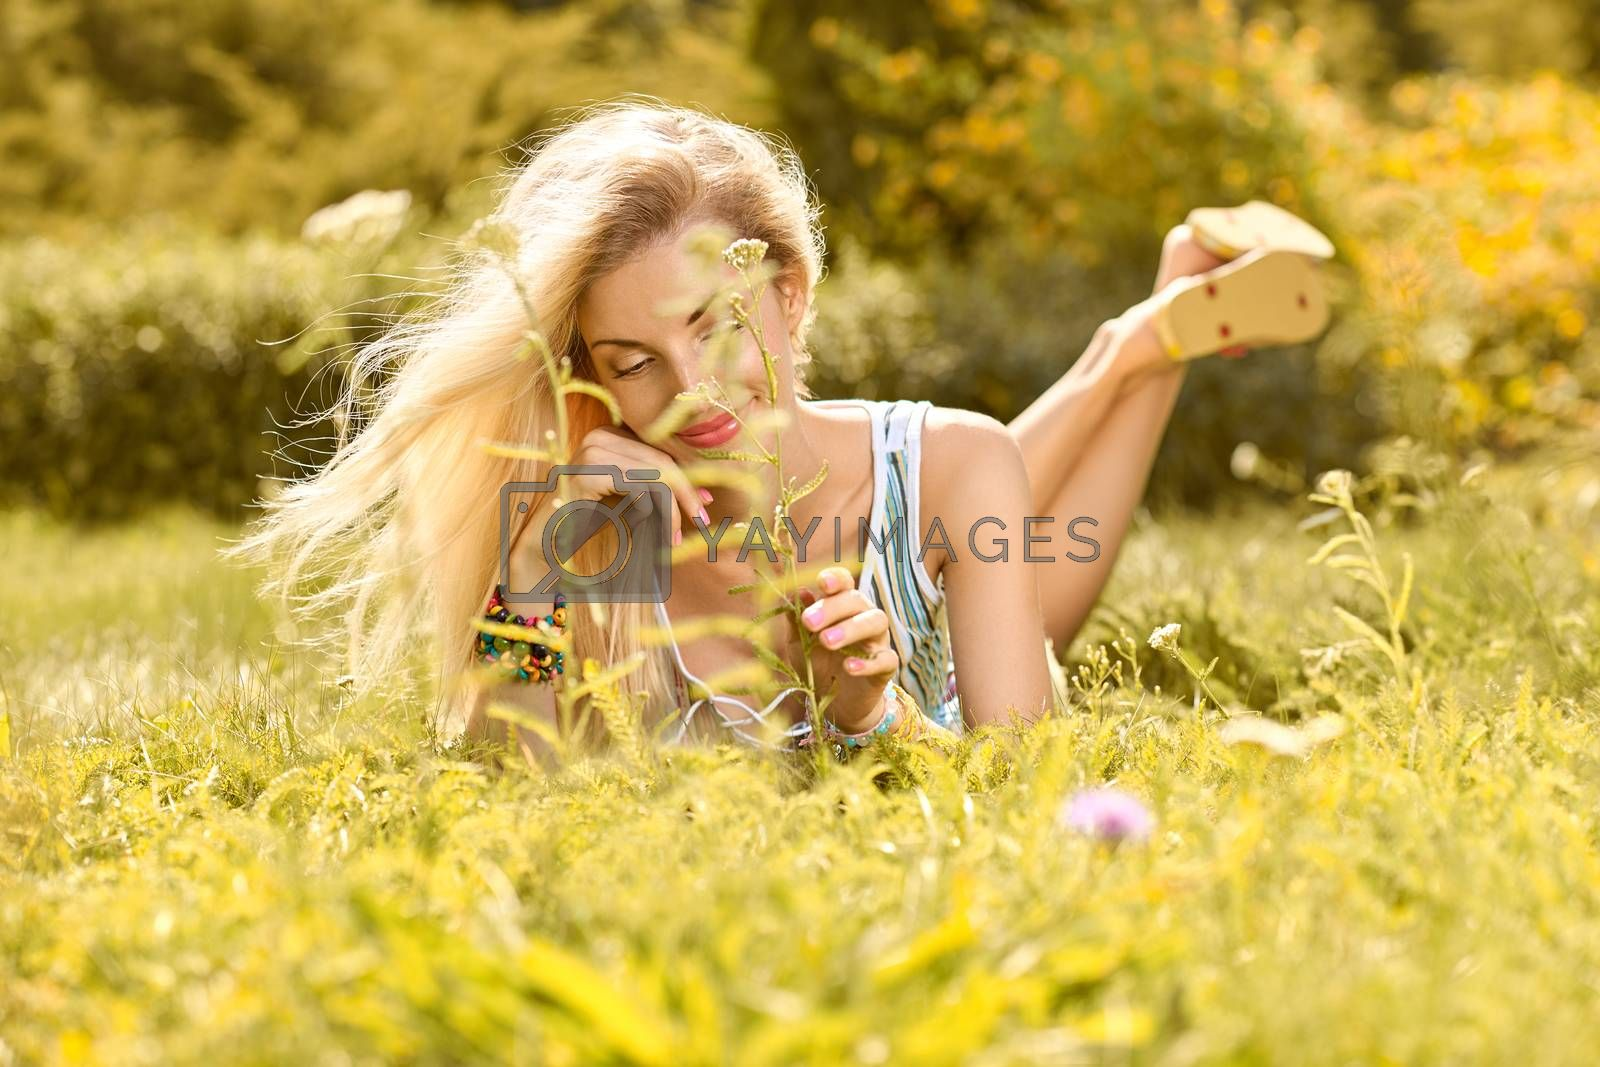 Beauty playful woman relax in summer garden dreaming on grass, people, outdoors, bokeh. Attractive happy blonde girl enjoying nature, harmony on meadow, lifestyle.Sunny day, forest, flowers, copyspace